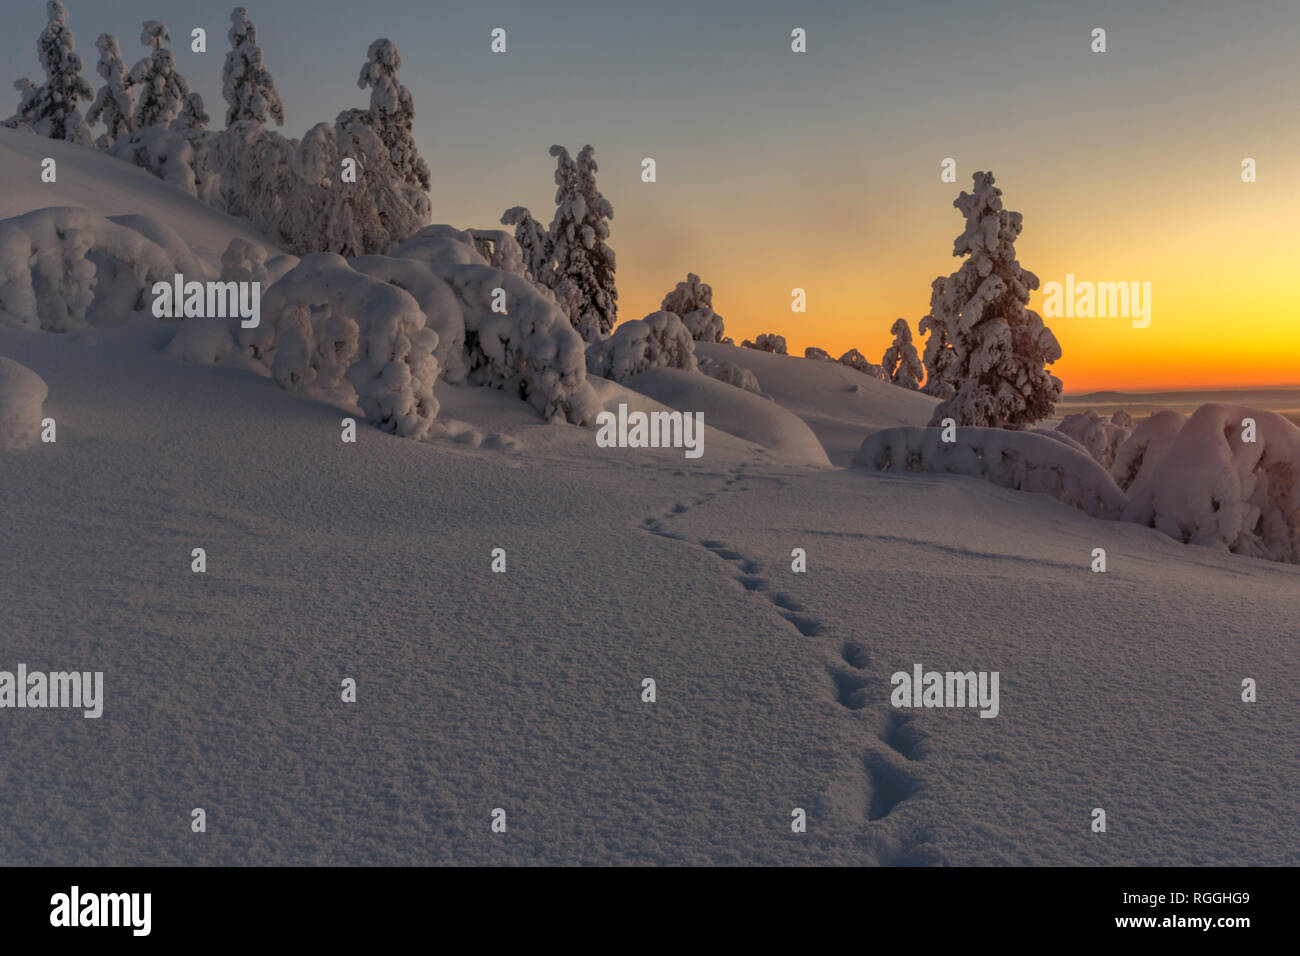 Winter landscape in direct light at sunset with nice color in the sky and snowy trees, animal tracks in foreground, Gällivare county, Swedish Lapland, - Stock Image